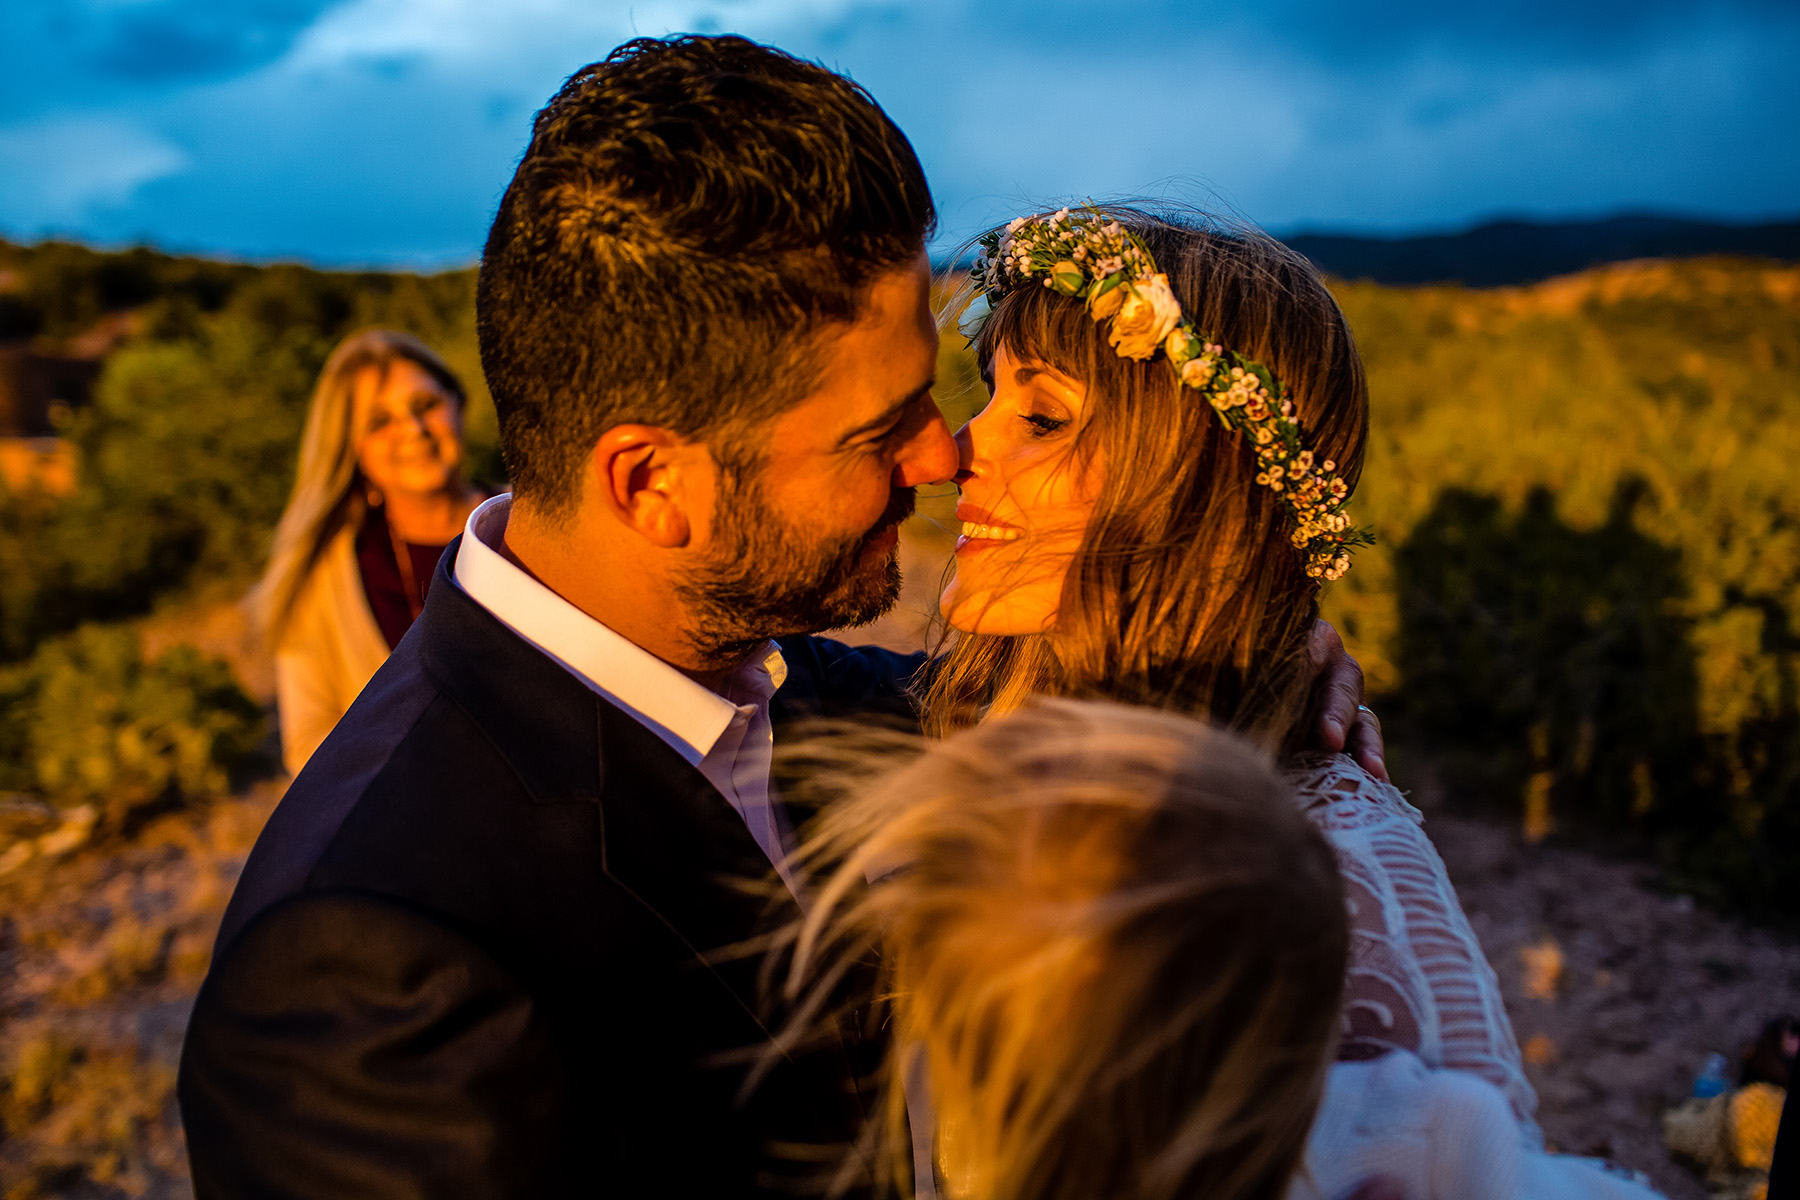 Melinda-Dustin-wedding-four-seasons-resort-santa-fe-new-mexico-1022